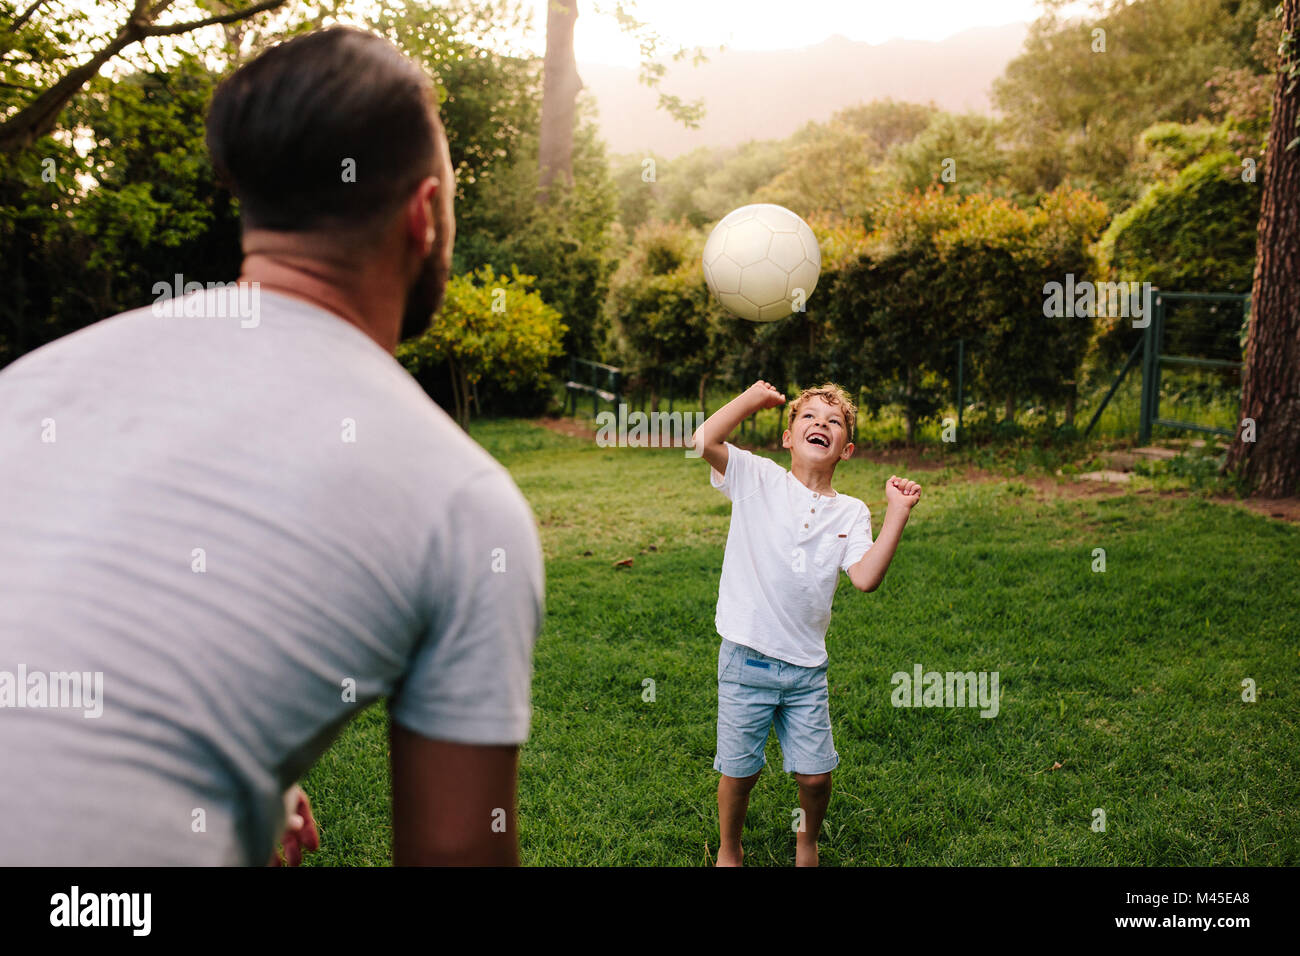 Father and son playing with a football in backyard garden. Happy little boy passing ball to his father. - Stock Image